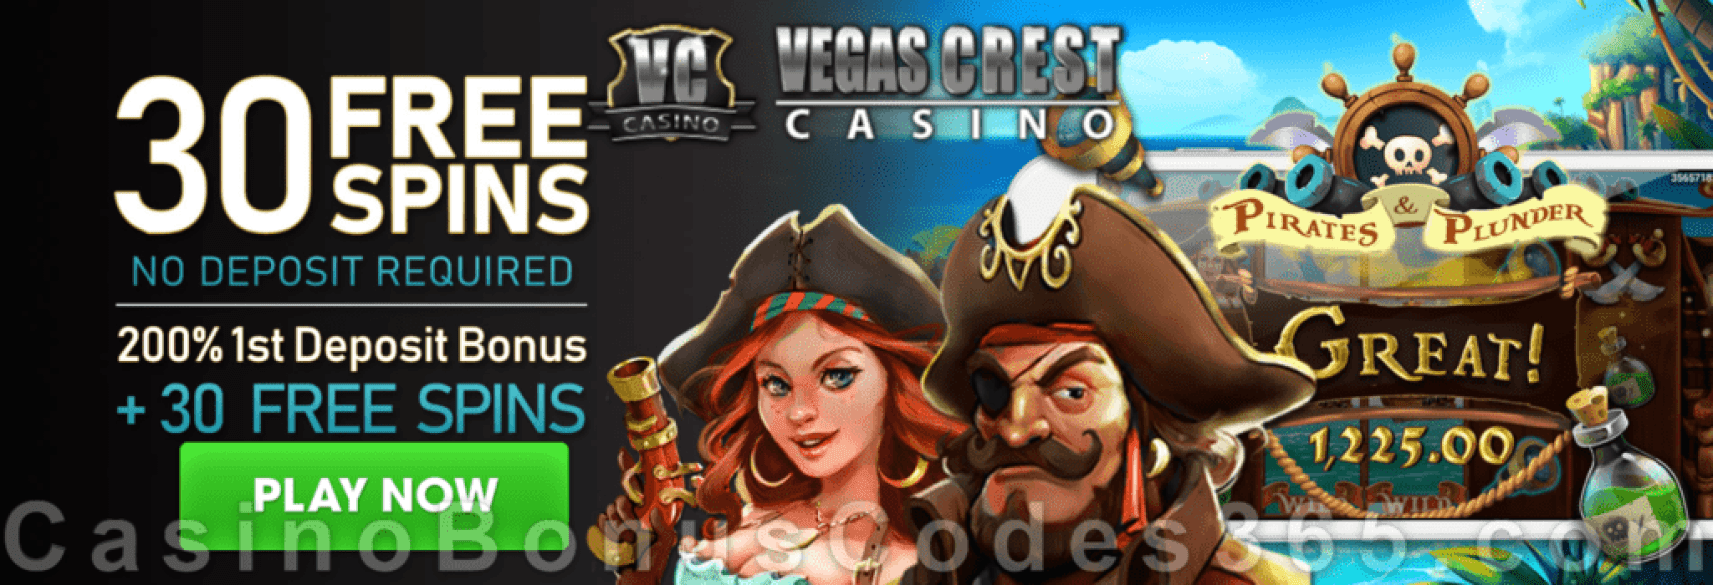 Vegas Crest Casino 30 FREE Spins on Mobilots Pirates and Plunder and 200% Match Bonus plus 30 FREE Spins Special Sign Up Deal